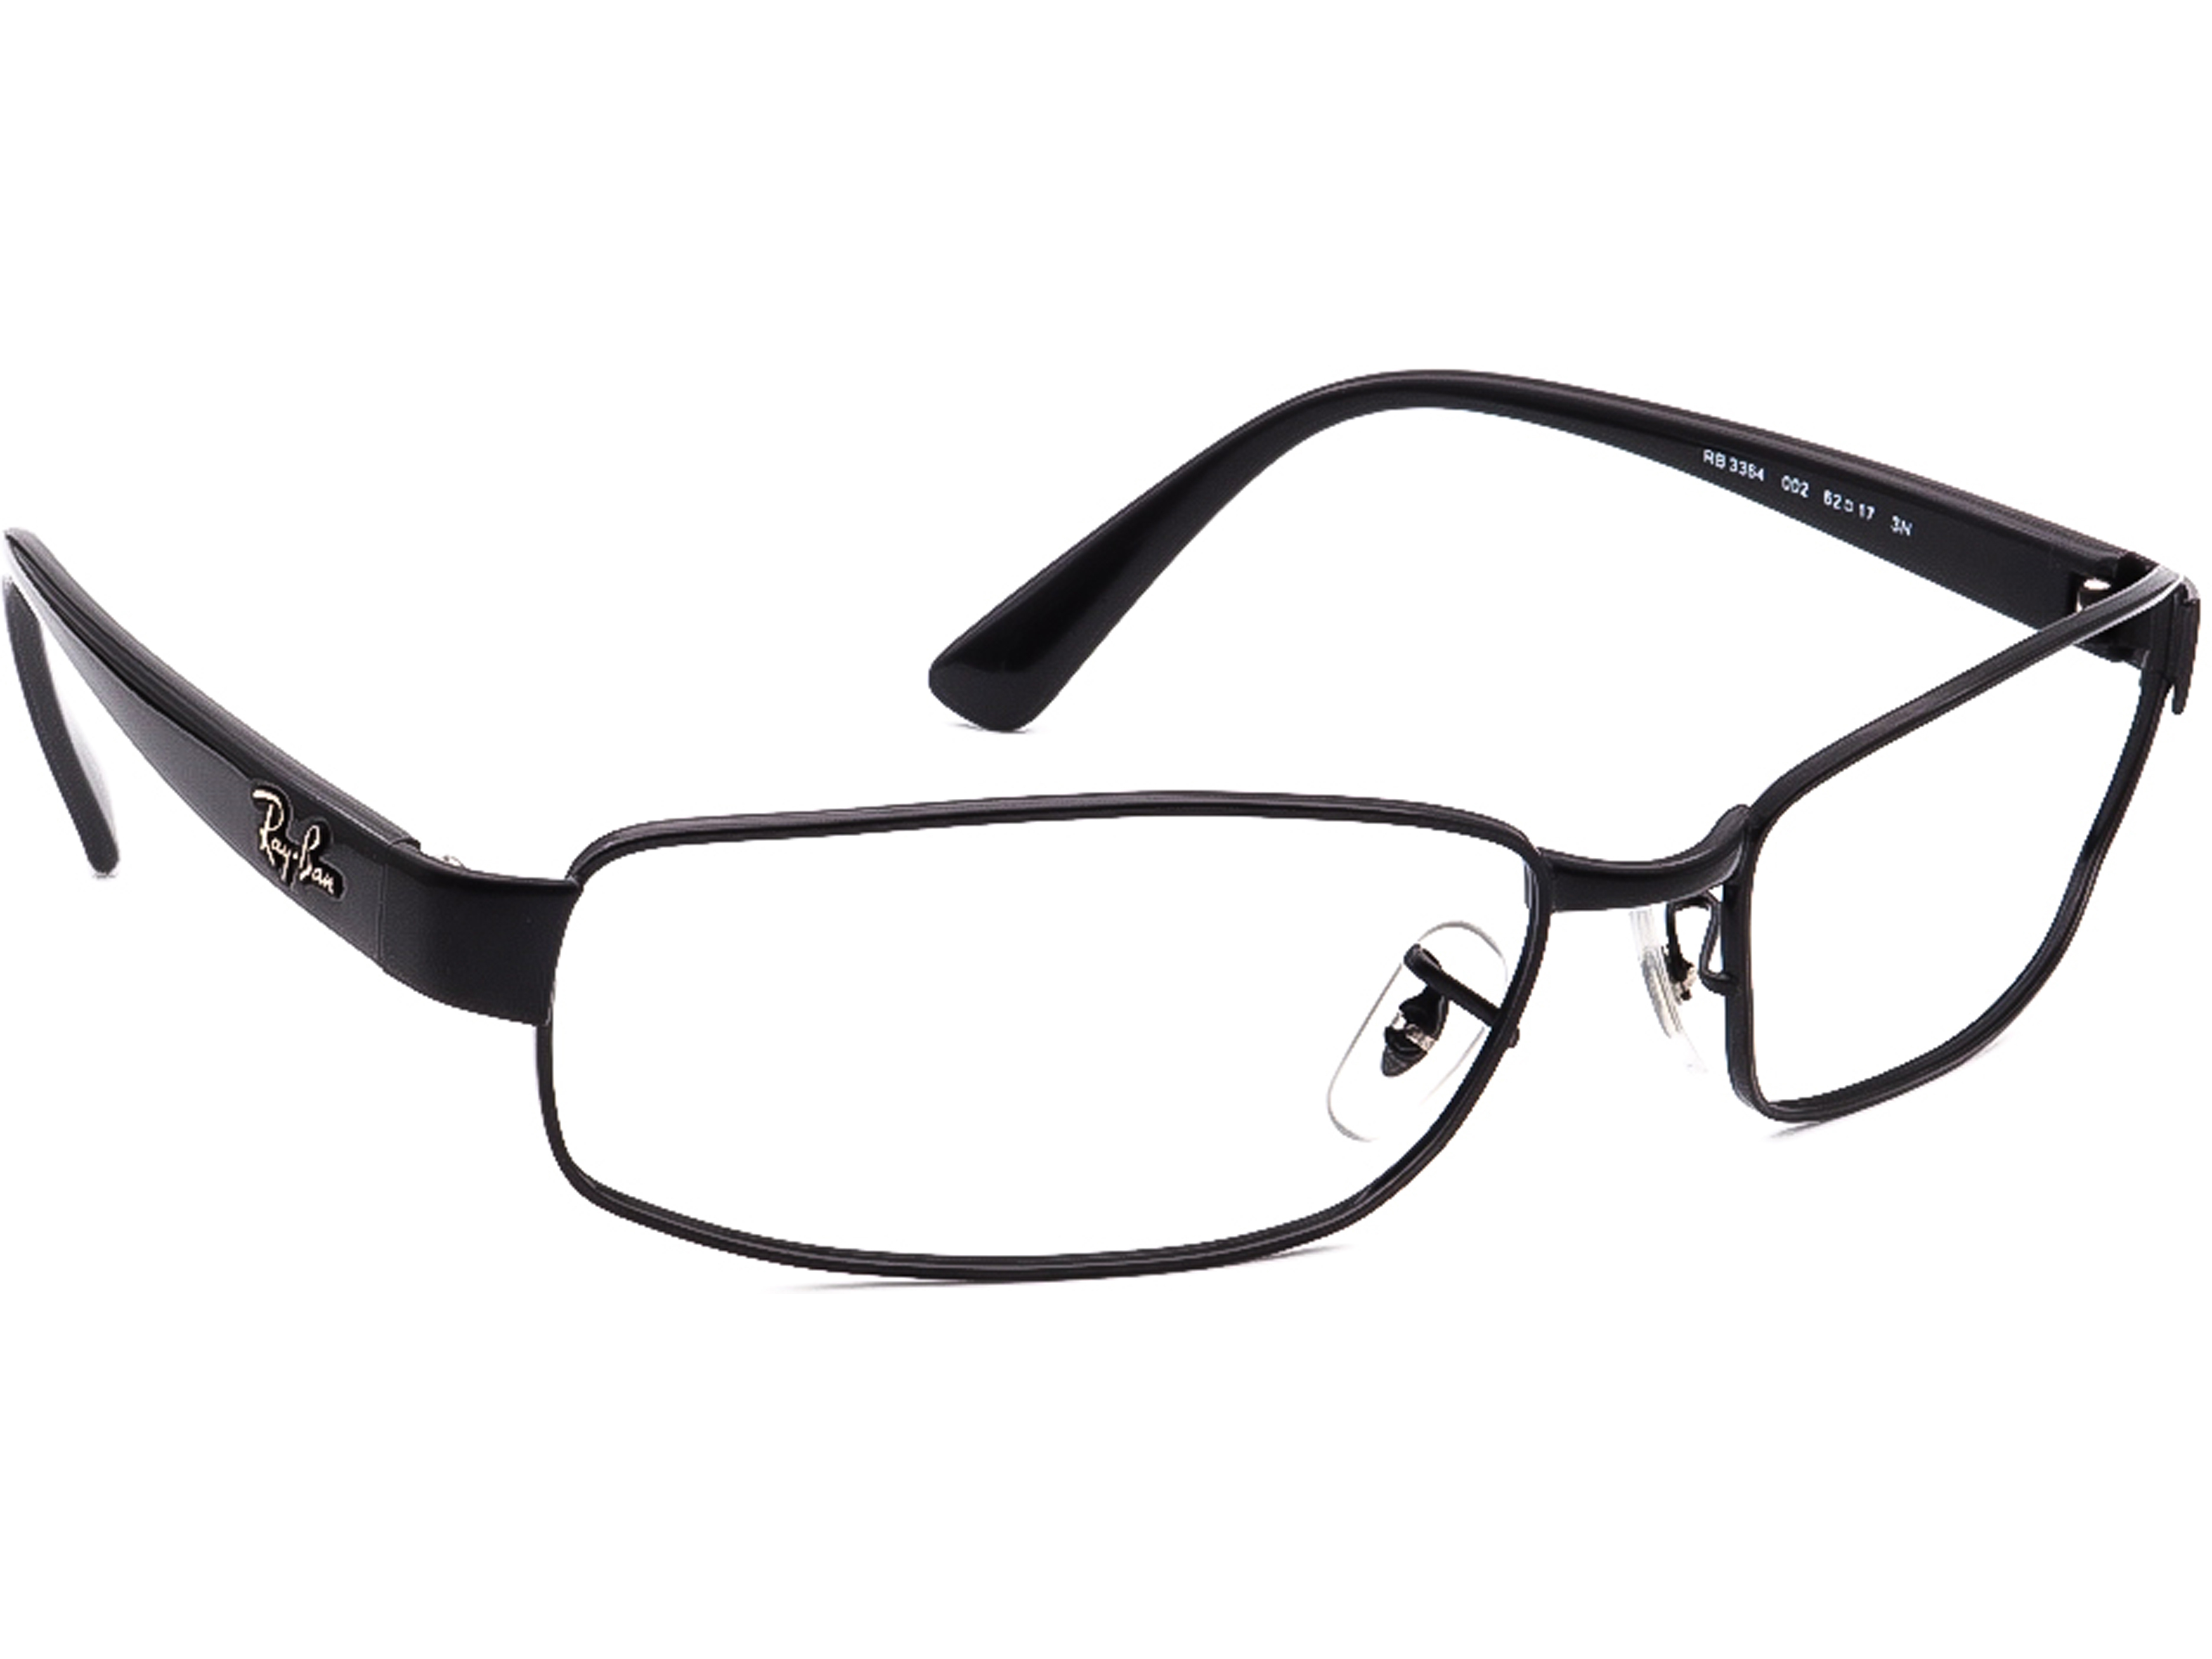 Ray Ban RB 3364 002 Sunglasses Frame Only